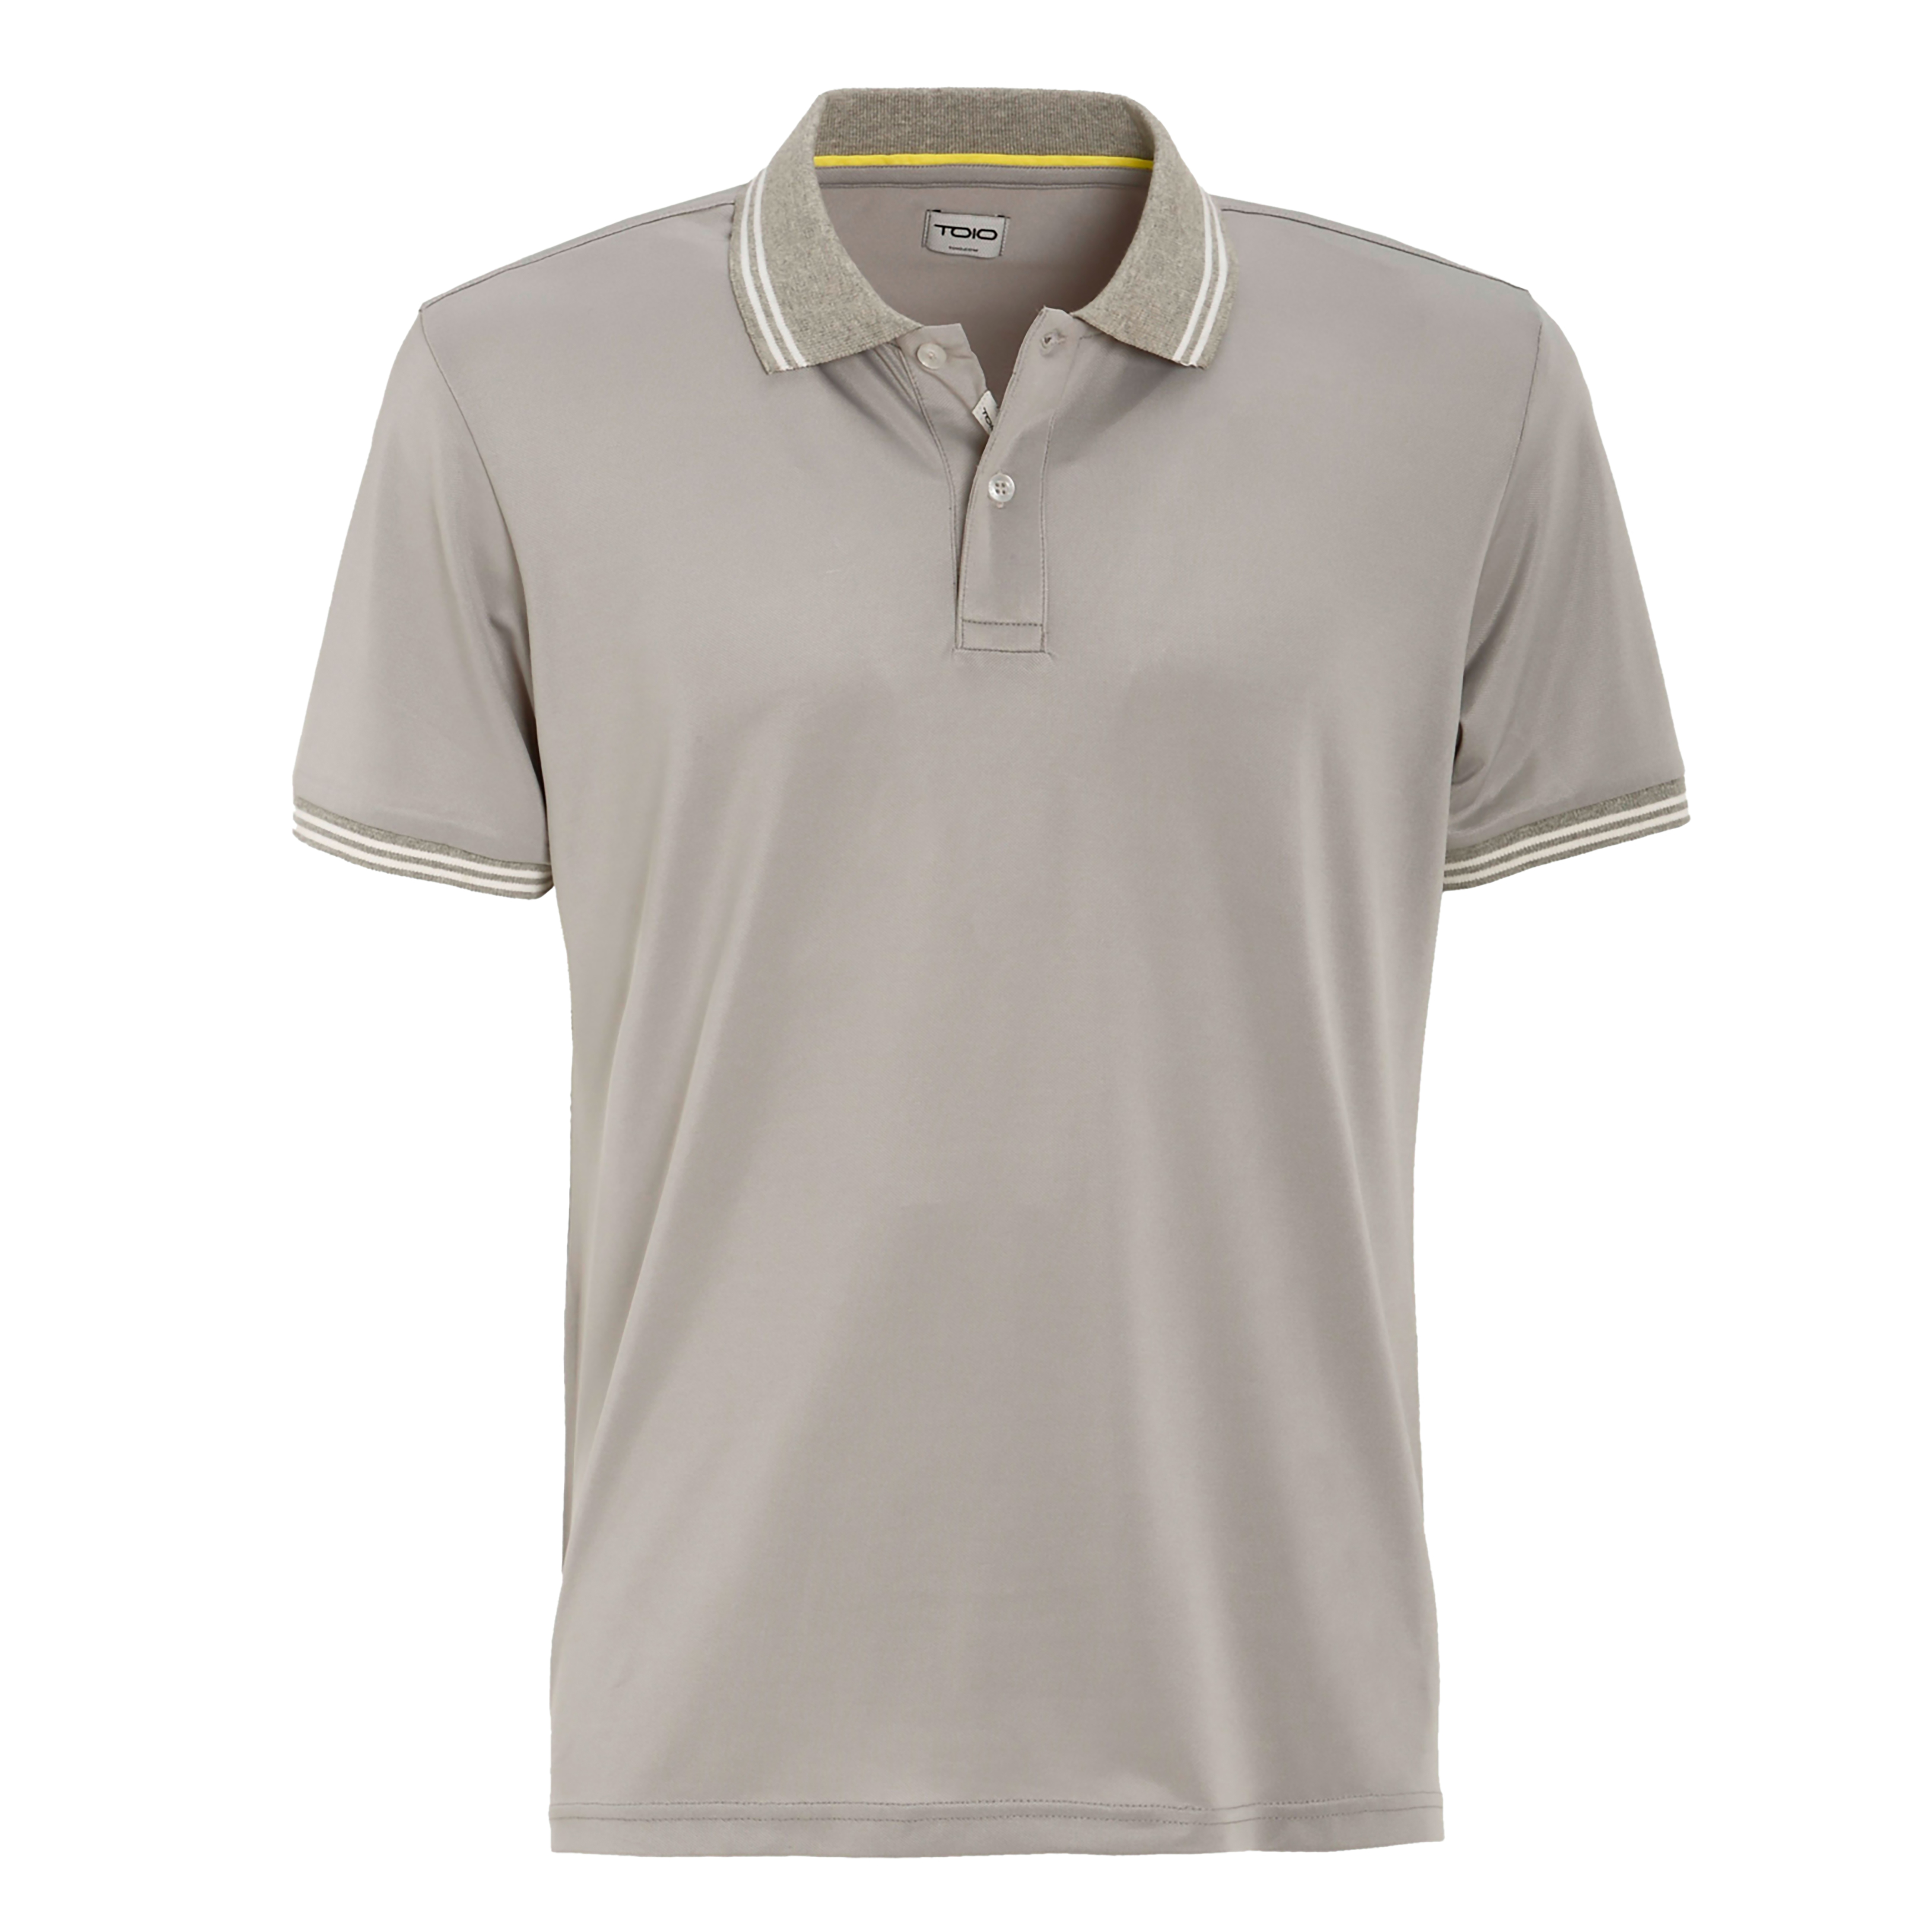 Toio bay techno polo shirt basic